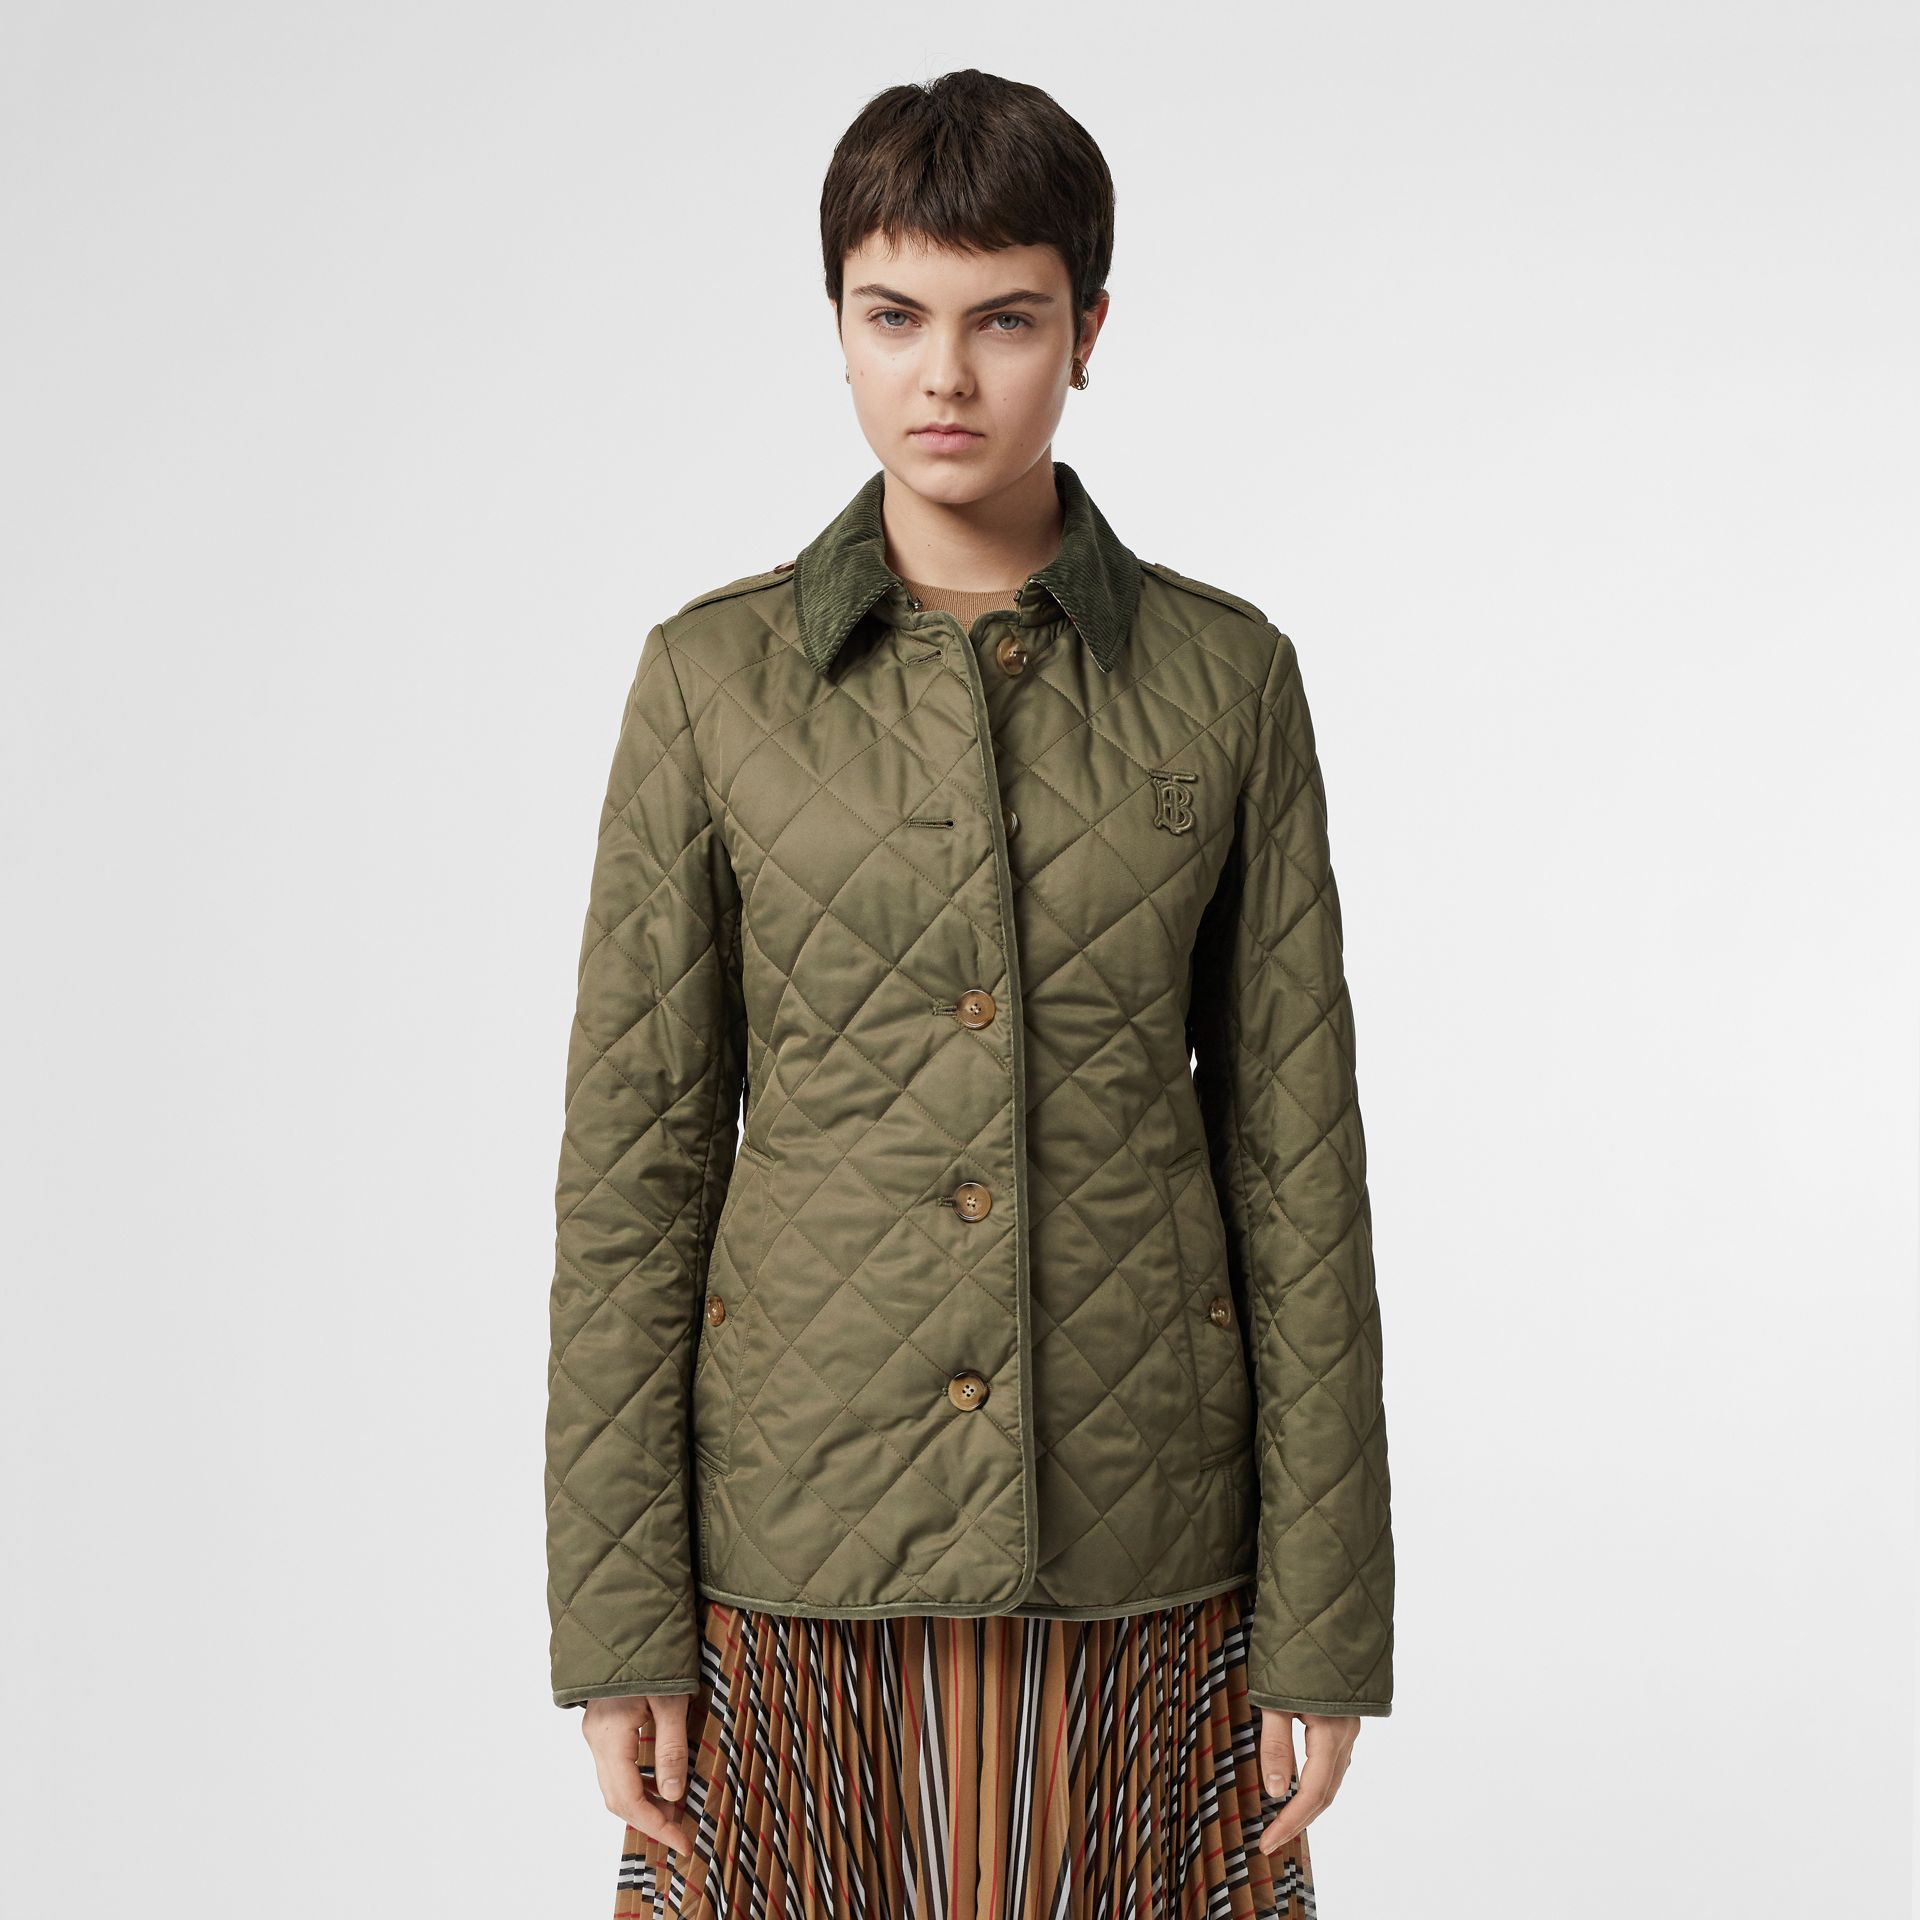 Monogram Motif Diamond Quilted Jacket in Olive Green - Women | Burberry Hong Kong - gallery image 4